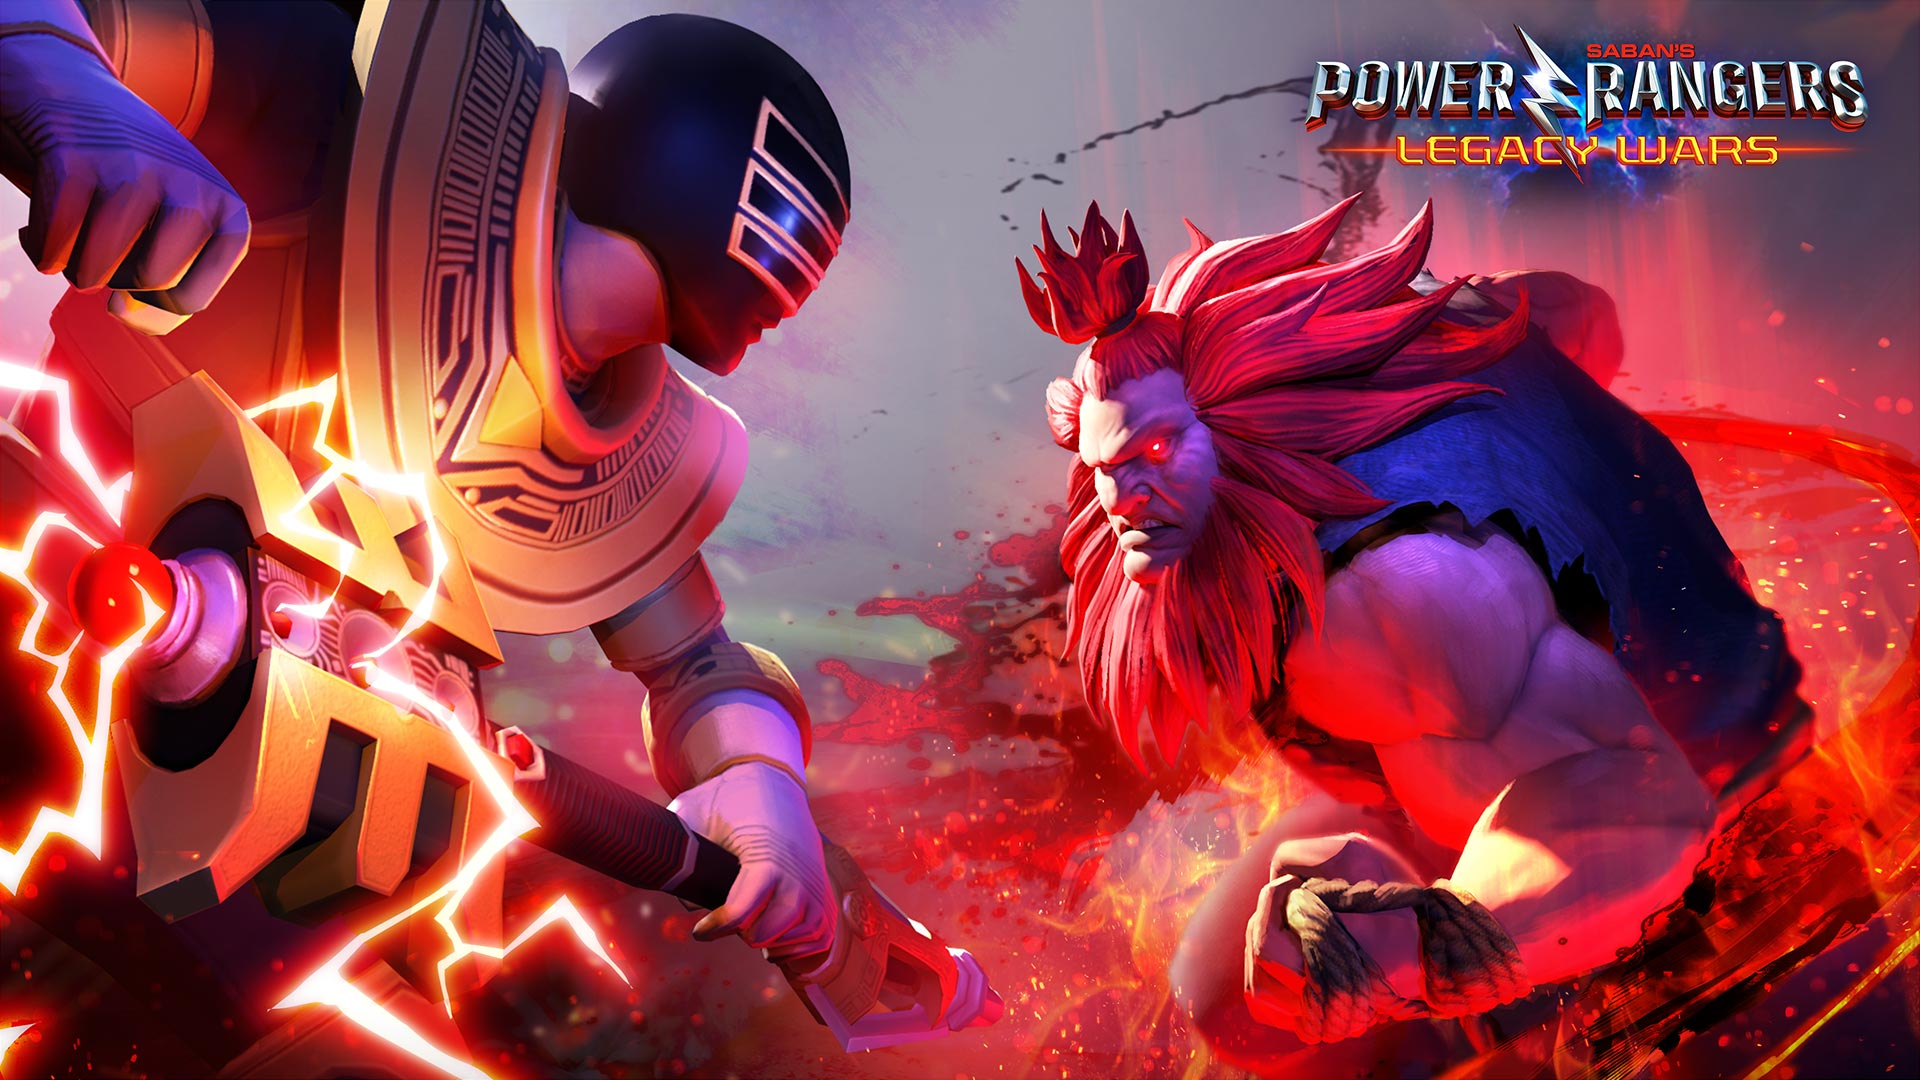 Power Rangers and Street Fighter in Power Rangers: Legacy Wars 6 out of 10 image gallery